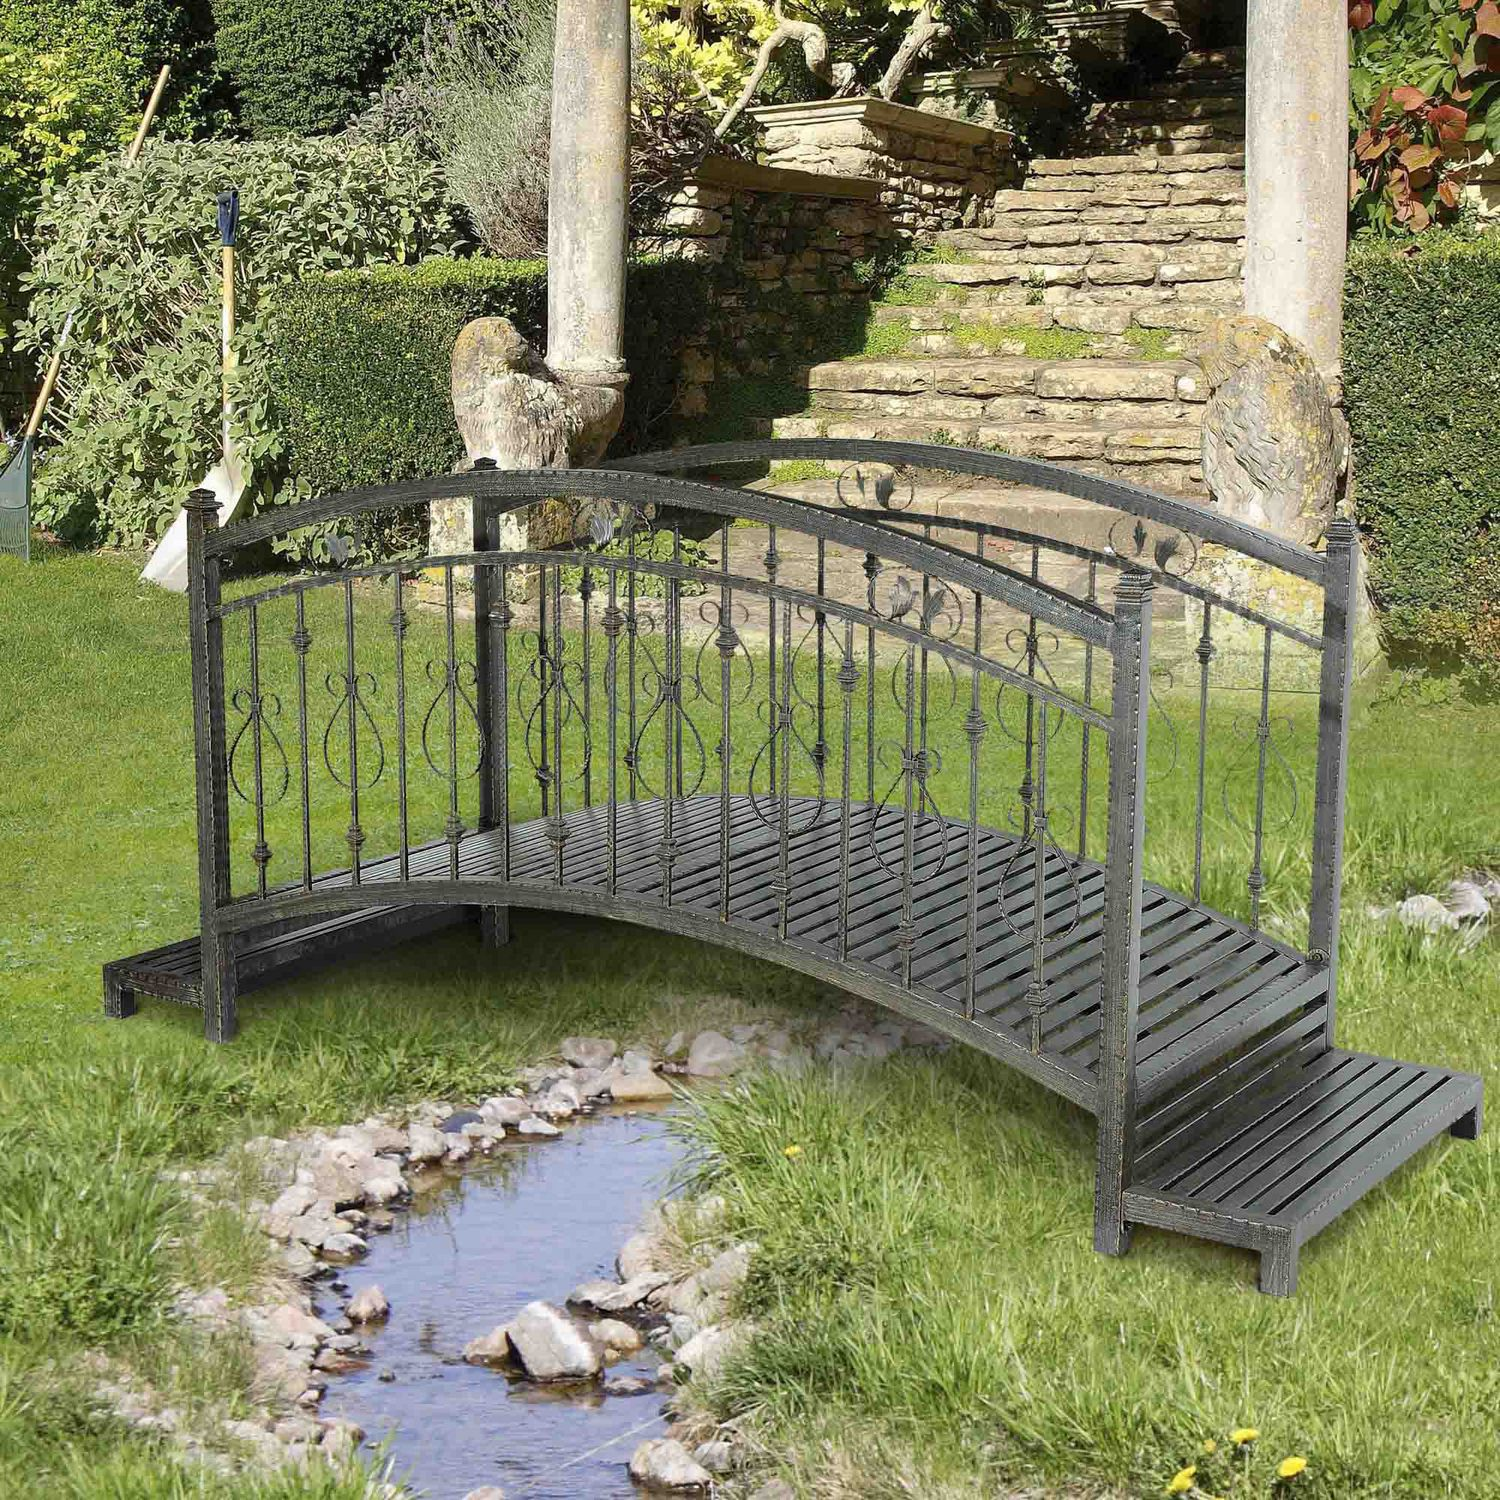 Sunjoy Garden Bridge Outdoor Décor | Walmart Canada on Backyard Decor Canada id=59176